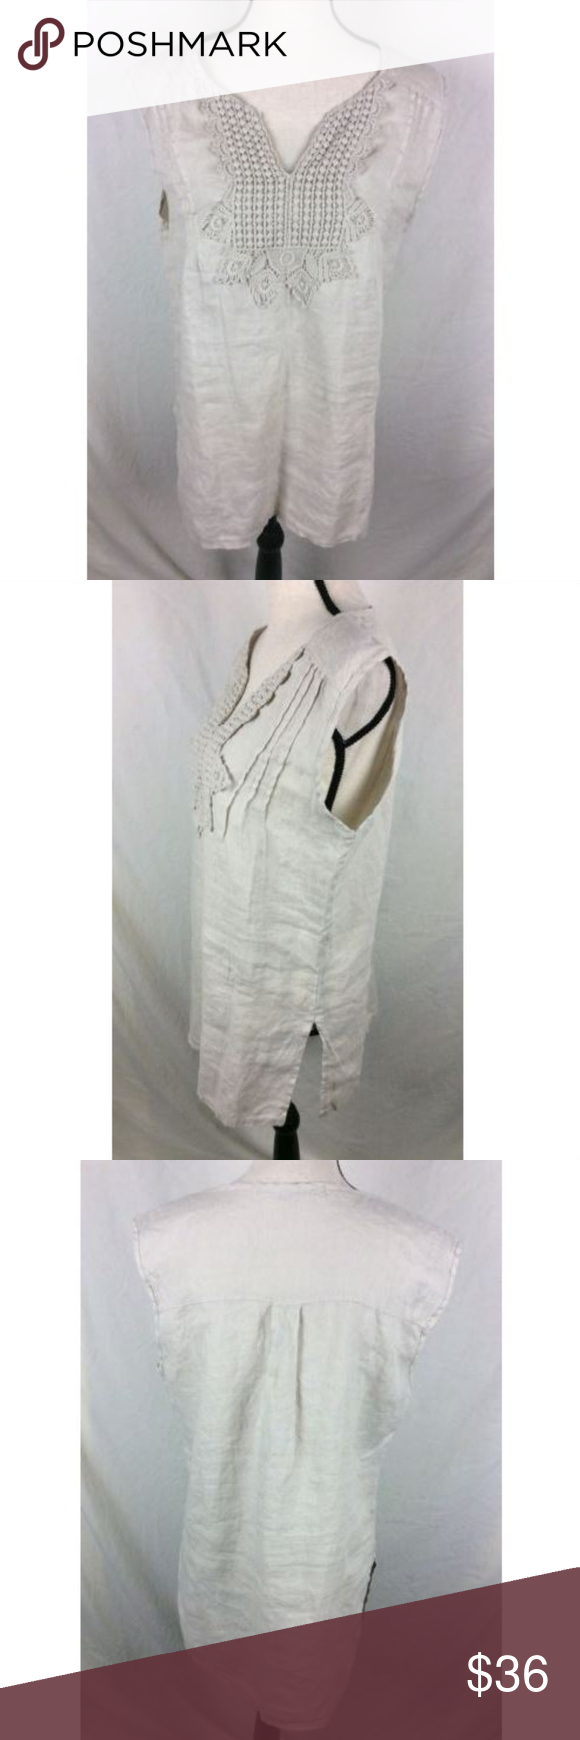 a949e54f737 Marina Gigli Top Sand Beige Sleeveless Linen Italy Marina Gigli Womens Top  Large Beige Tan Sleeveless